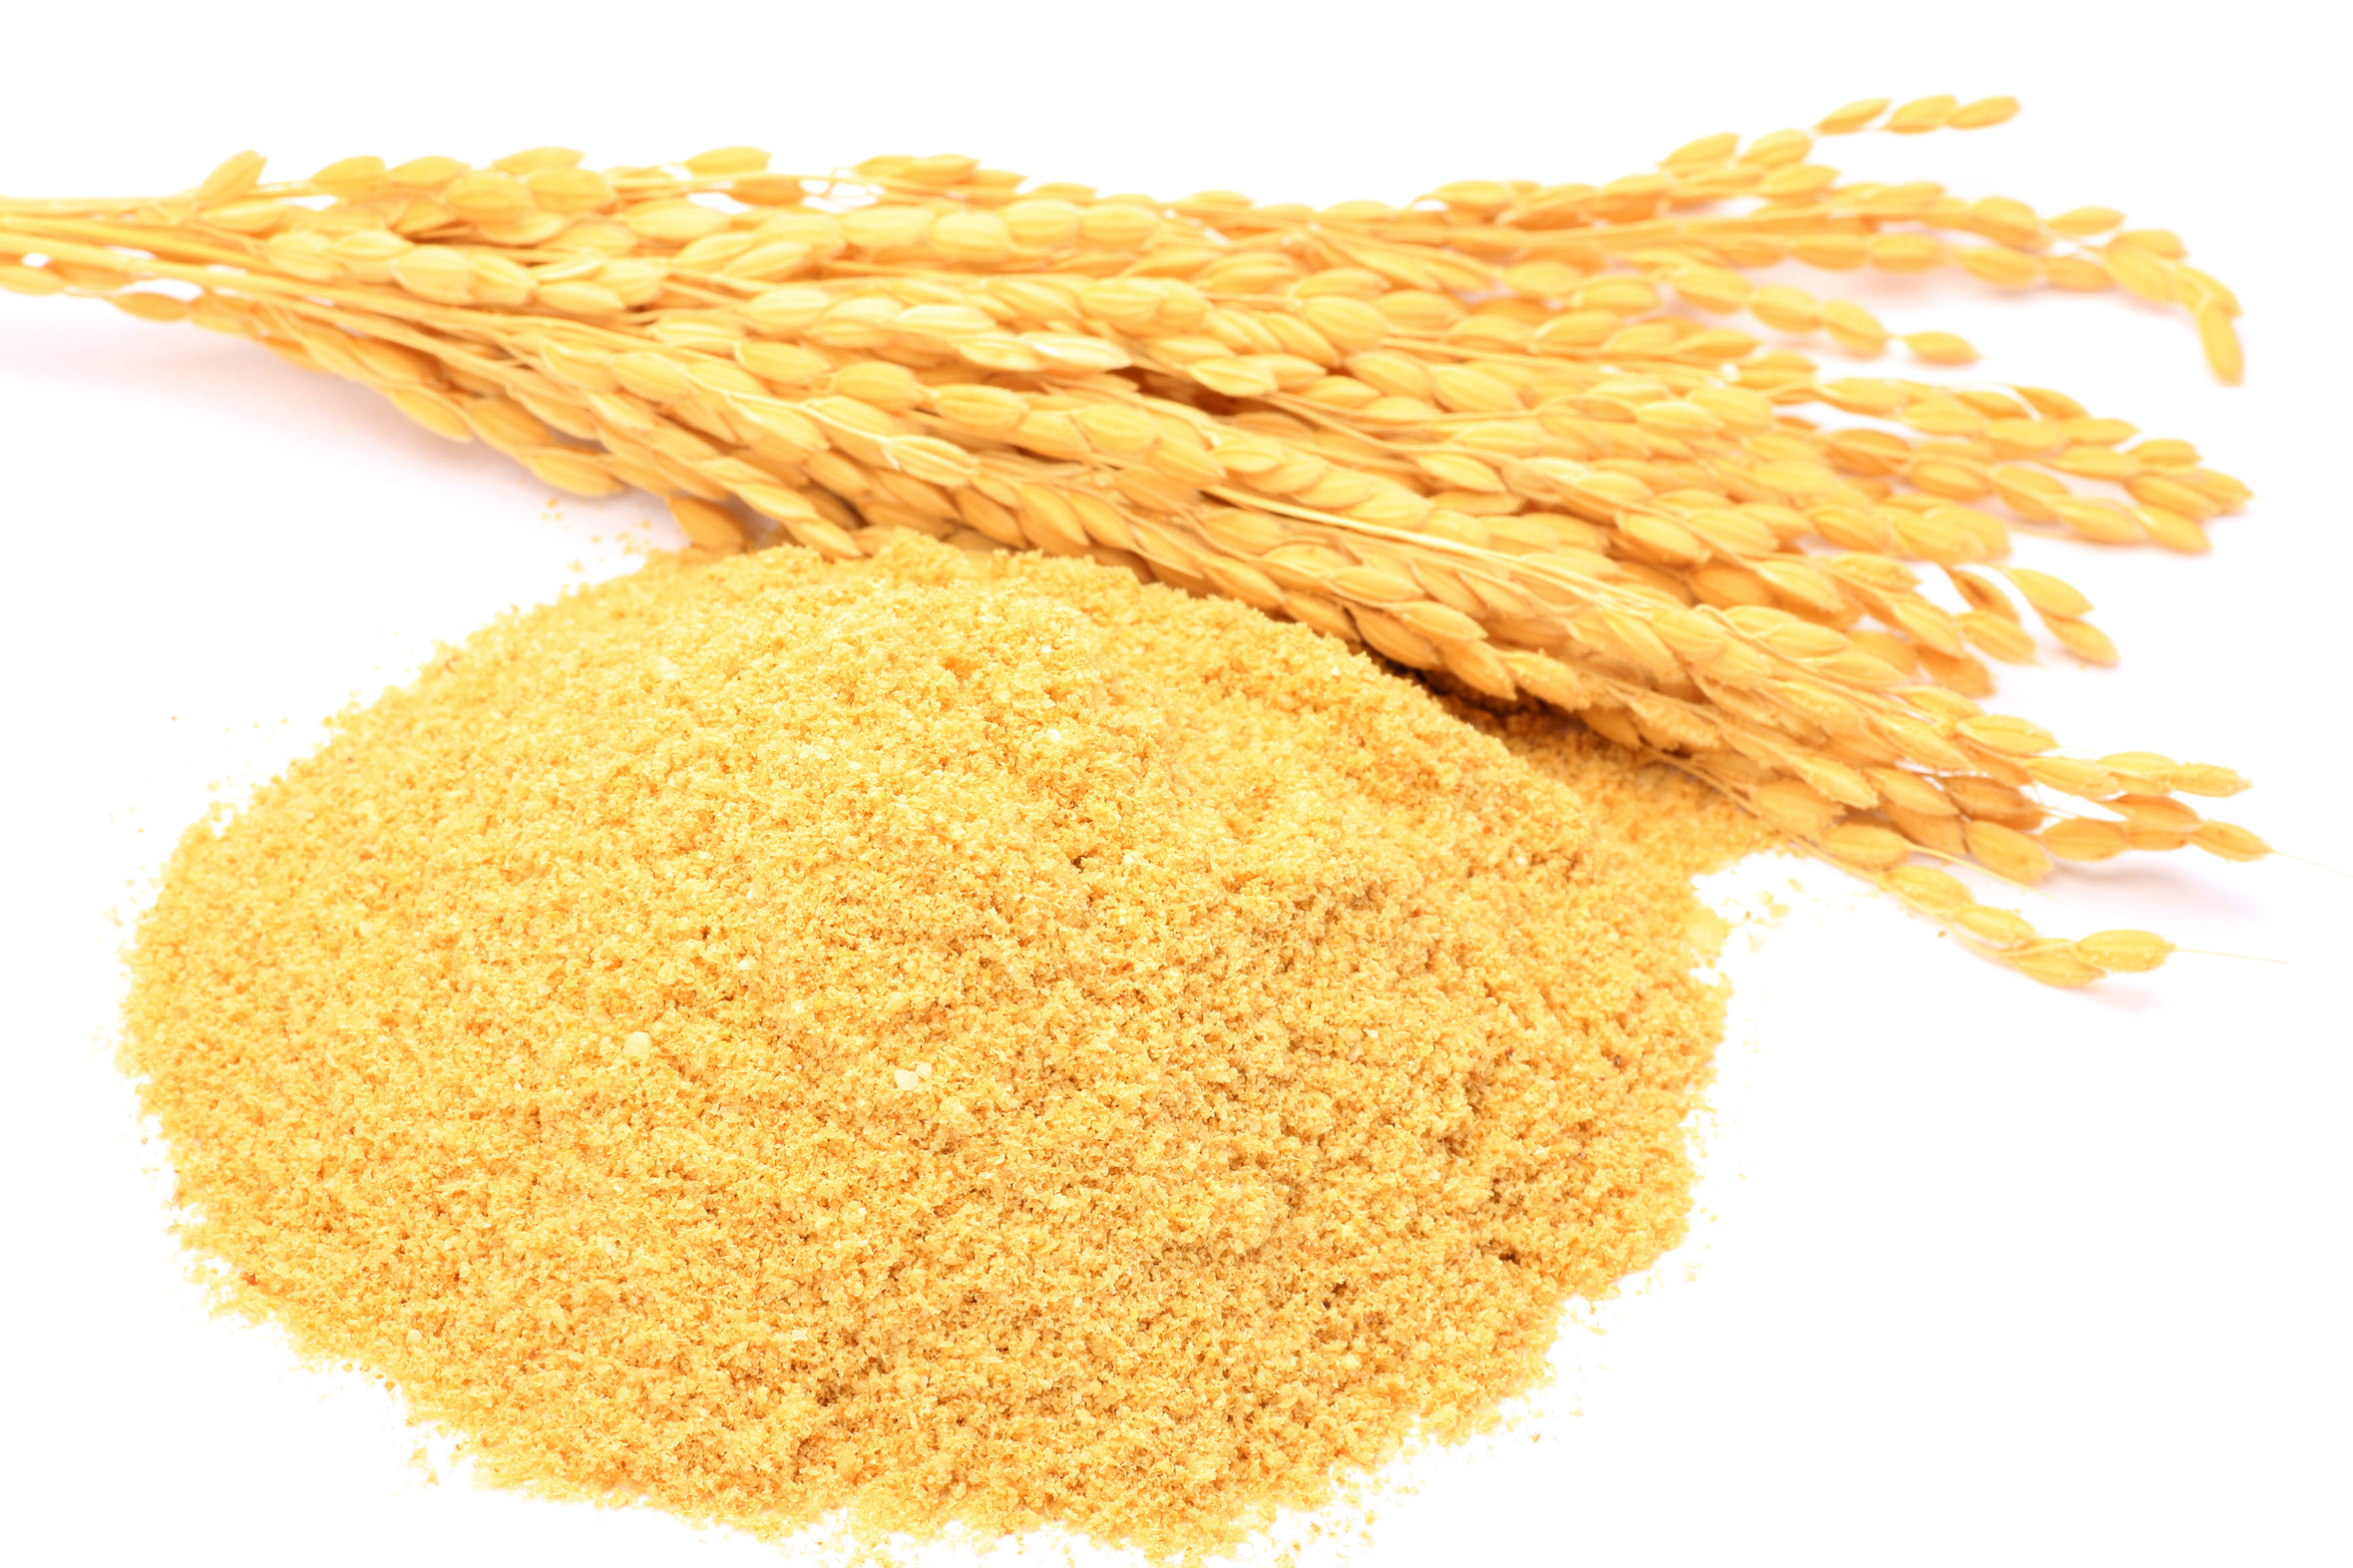 Rice bran has high nutritional value and is a rich source of proteins, fats, minerals and micronutrients such as B vitamins.